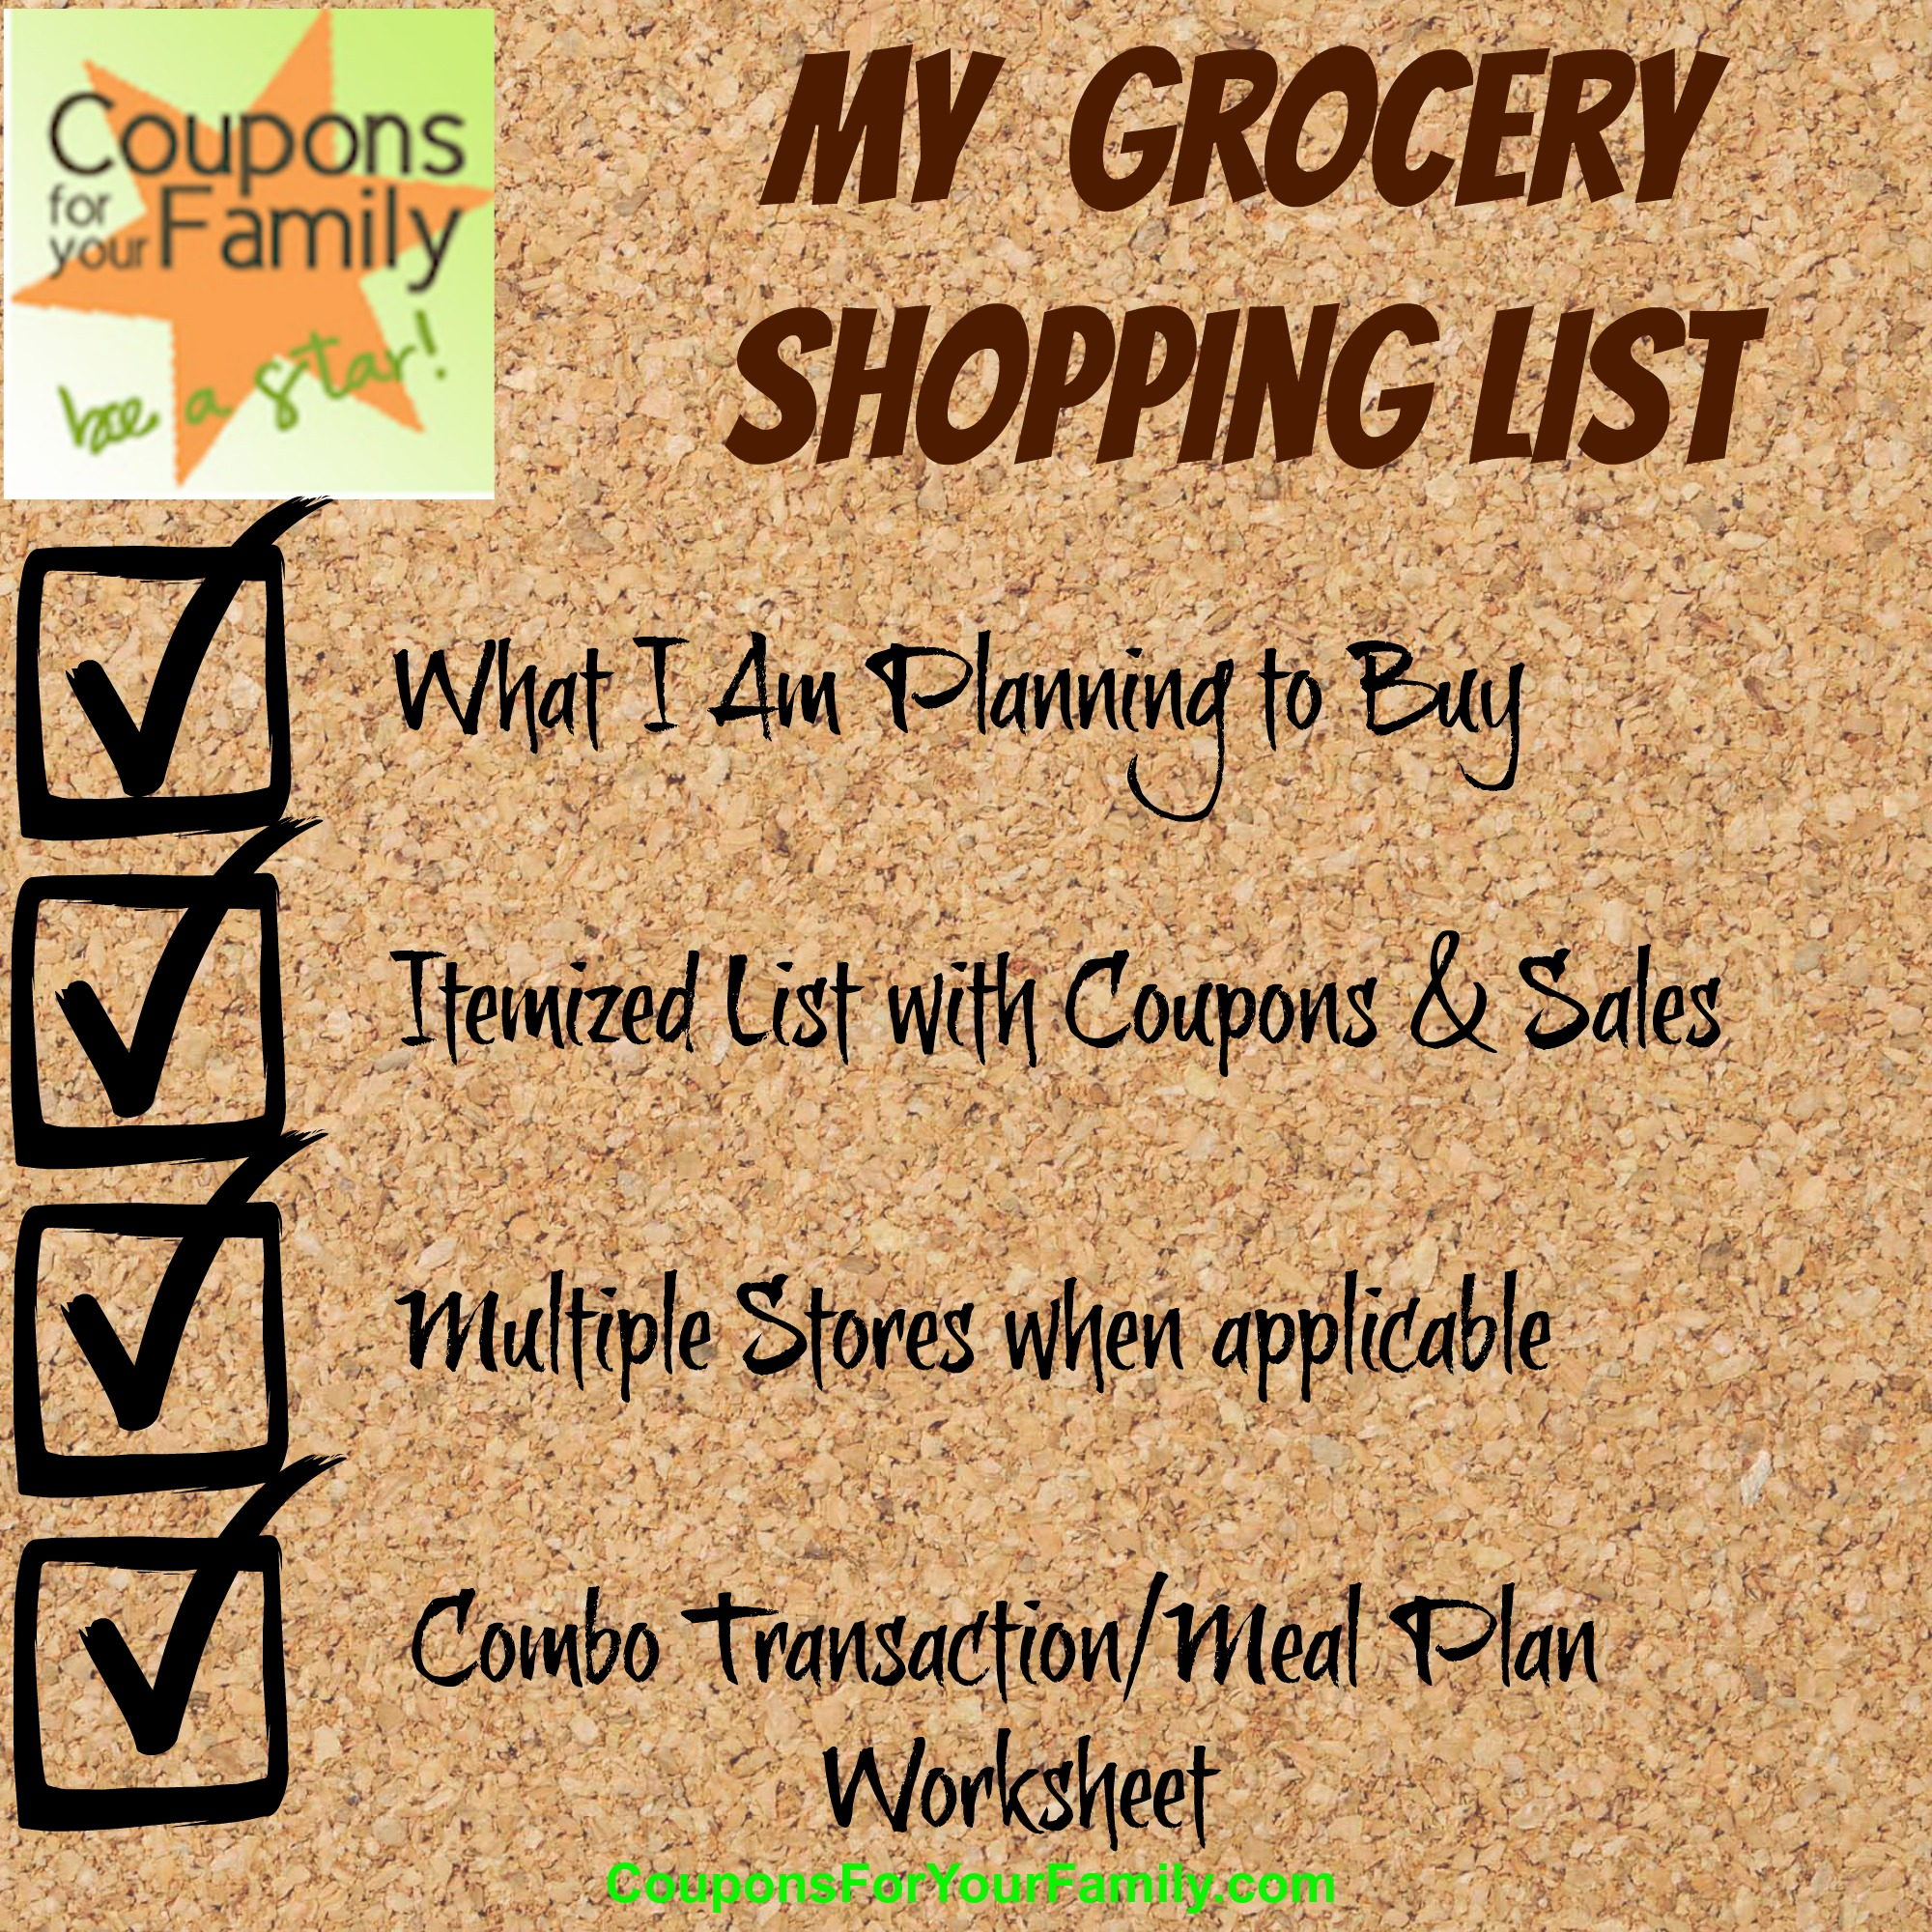 My Planned Grocery Shopping List June 14 – 20: Tops deals gaining 1200 Gas Points plus meat coupons, Dollar General $5 off $25 and Aldi deals